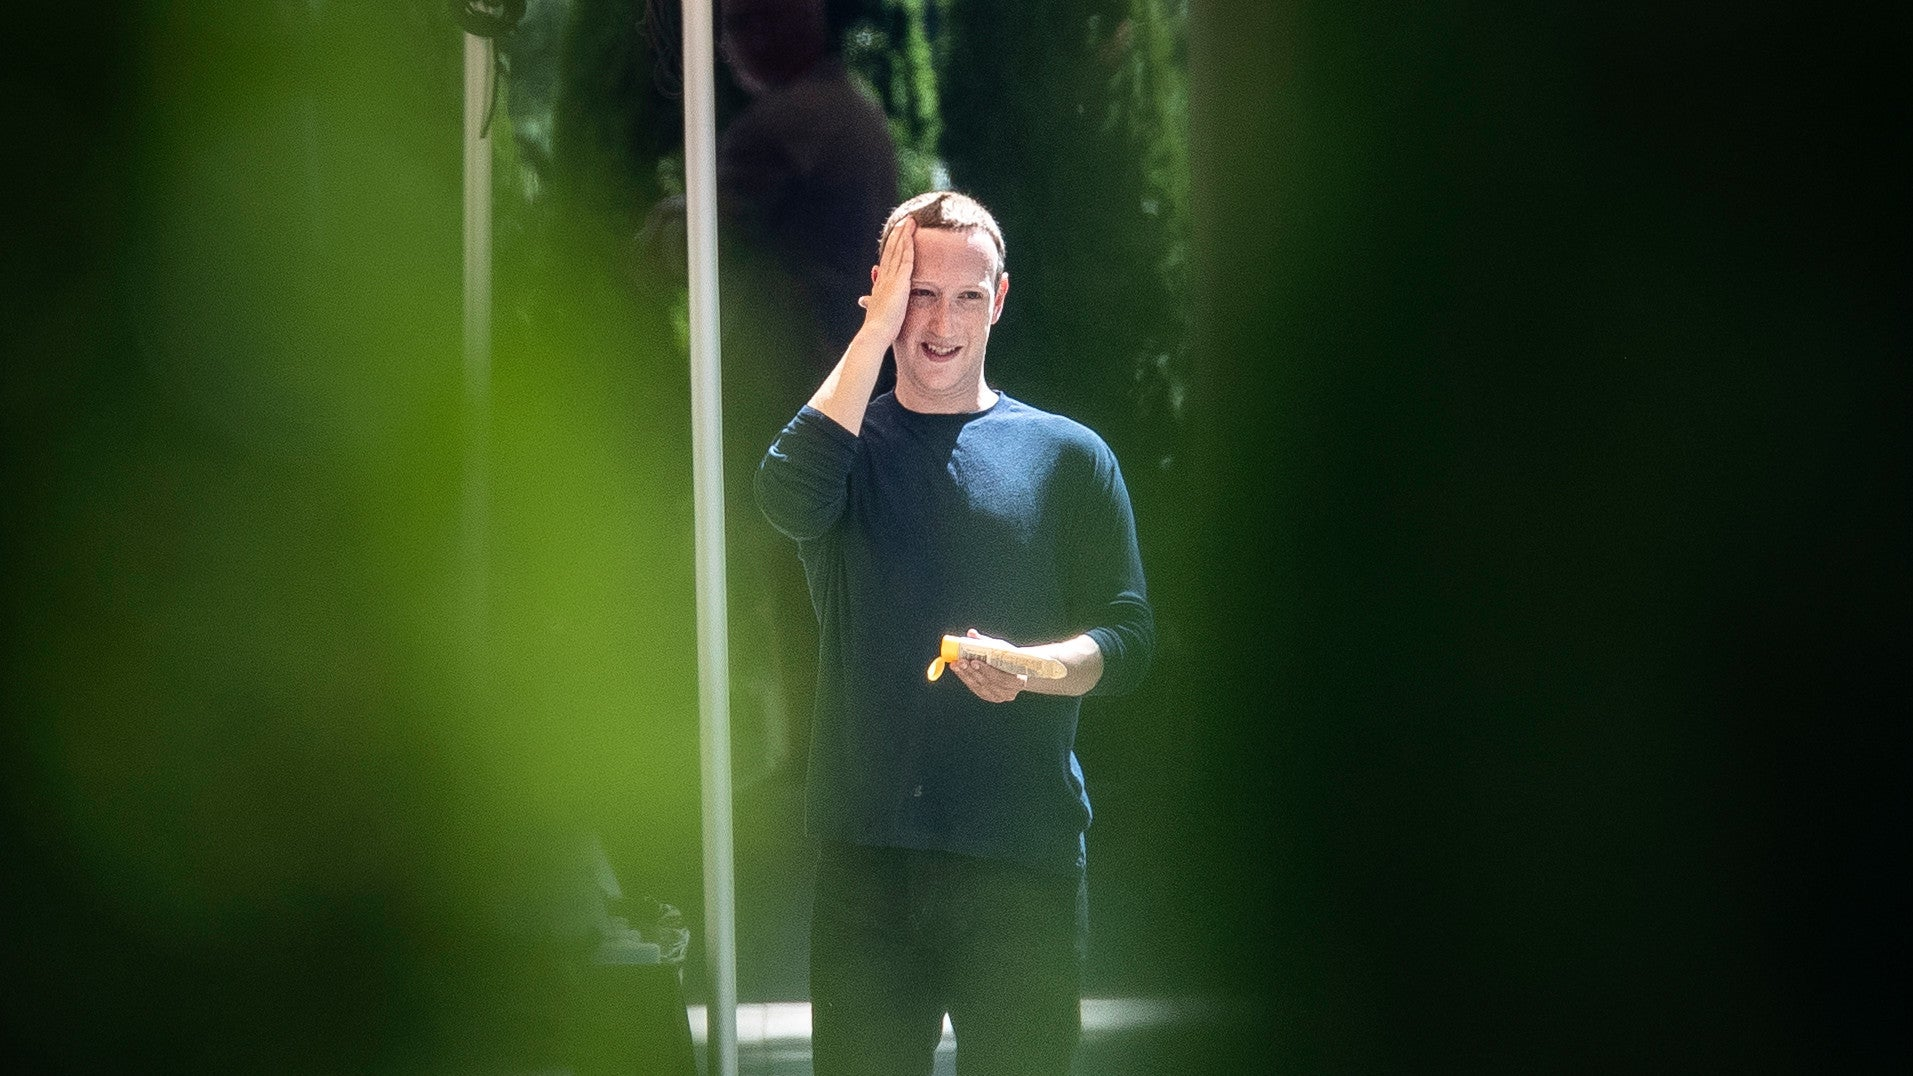 Exposed Server Contained Phone Numbers Of Hundreds Of Millions Of Facebook Users